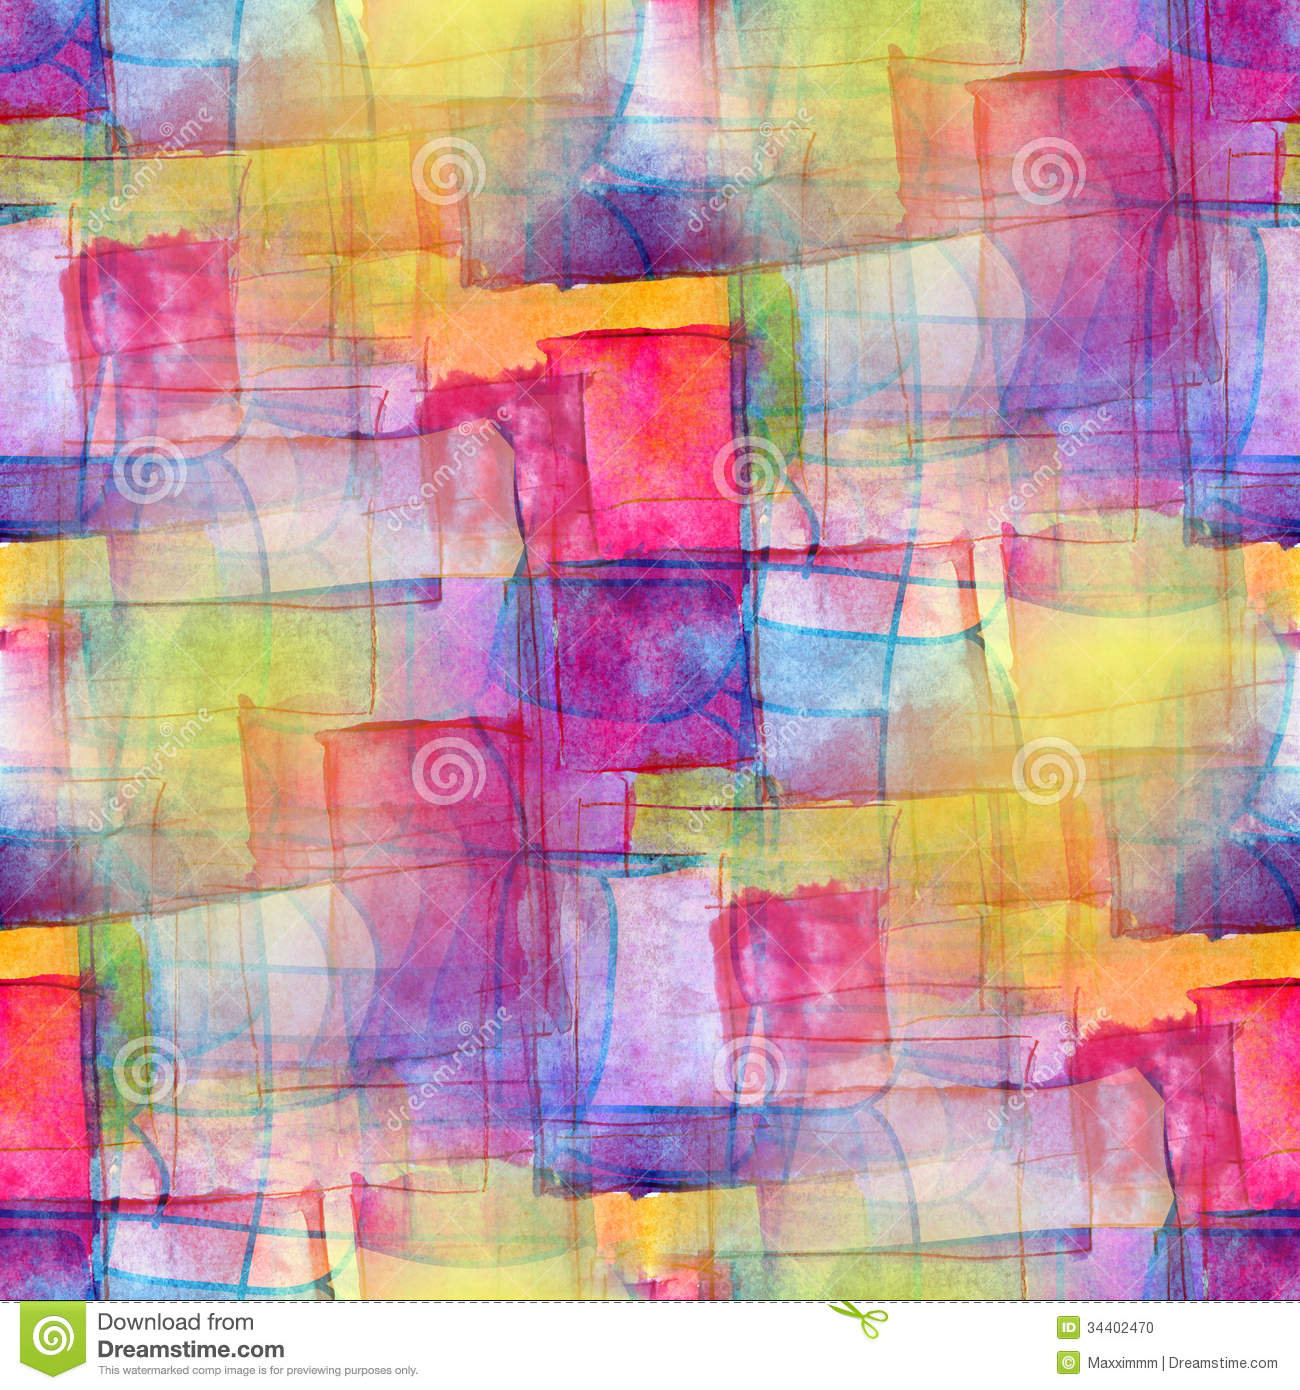 Artist Seamless Blue Cubism Abstract Watercolor